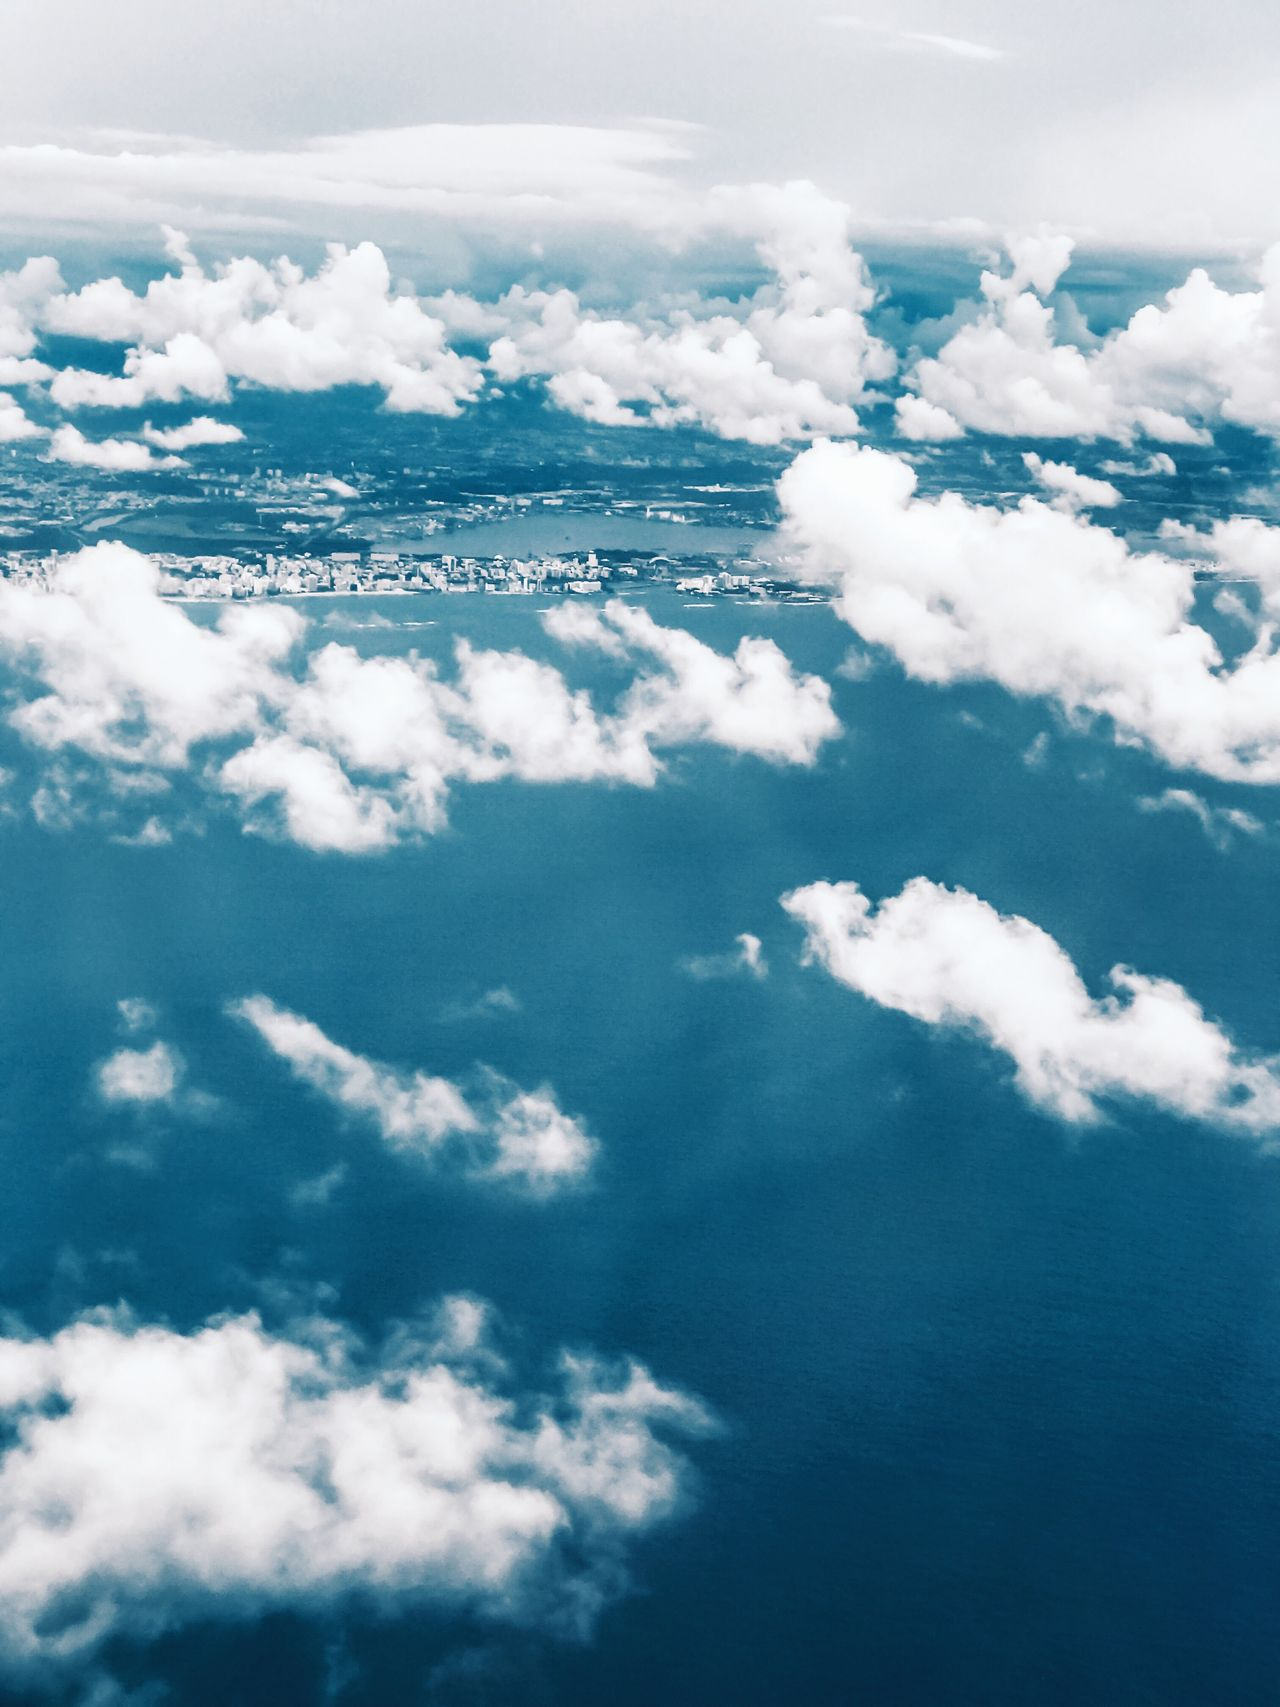 Aerial View Sky Beauty In Nature Cloud - Sky Nature Scenics No People Day Sea Tranquility Blue Outdoors Water Backgrounds Aerial Photography Landscape Puerto Rico Clouds And Sky Ocean Caribbean The Great Outdoors - 2017 EyeEm Awards